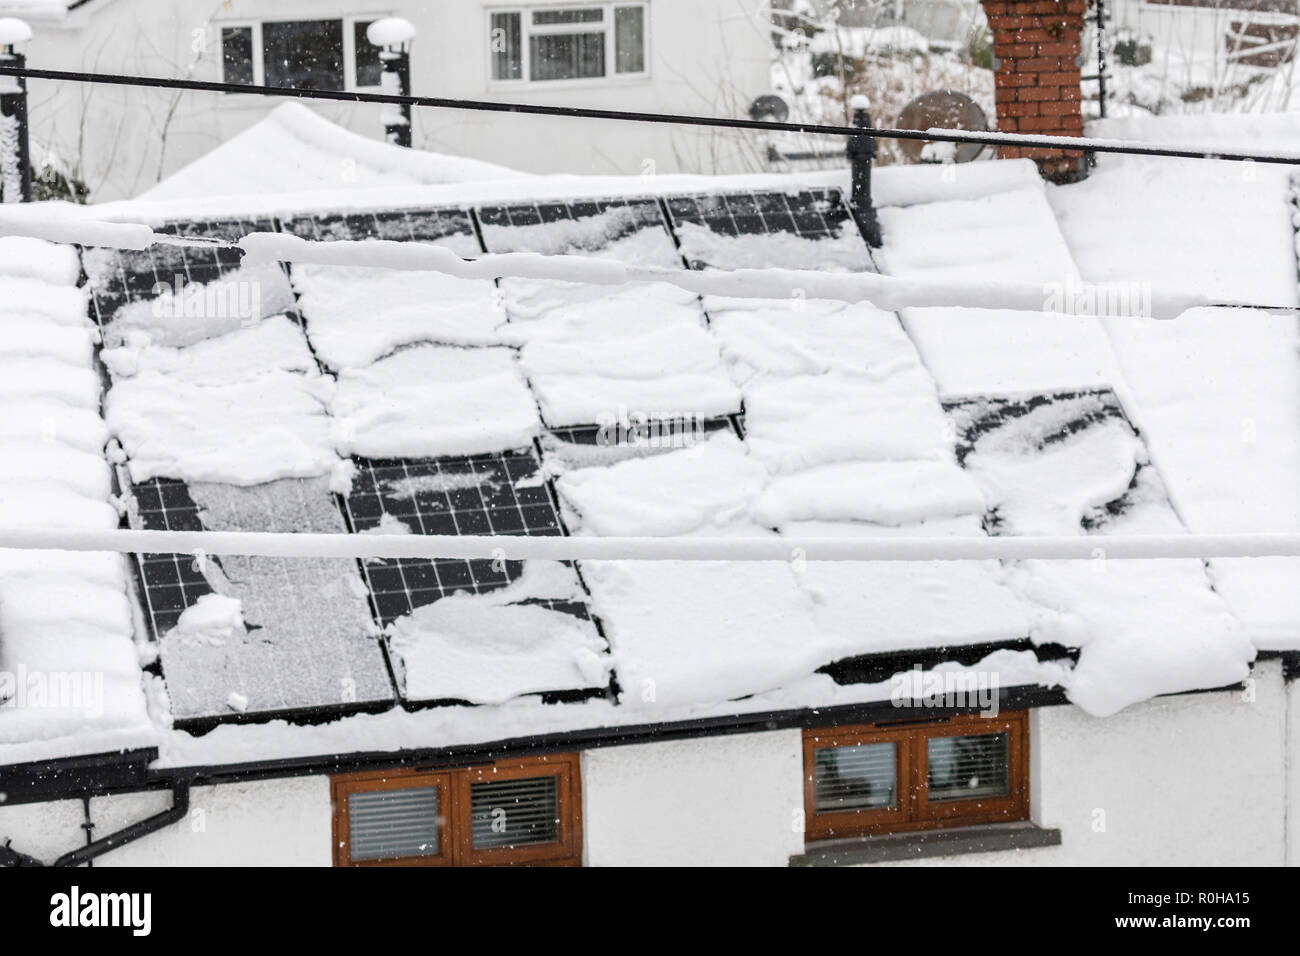 Solar panels with snow cover sliding off, Llanfoist, Wales, UK - Stock Image